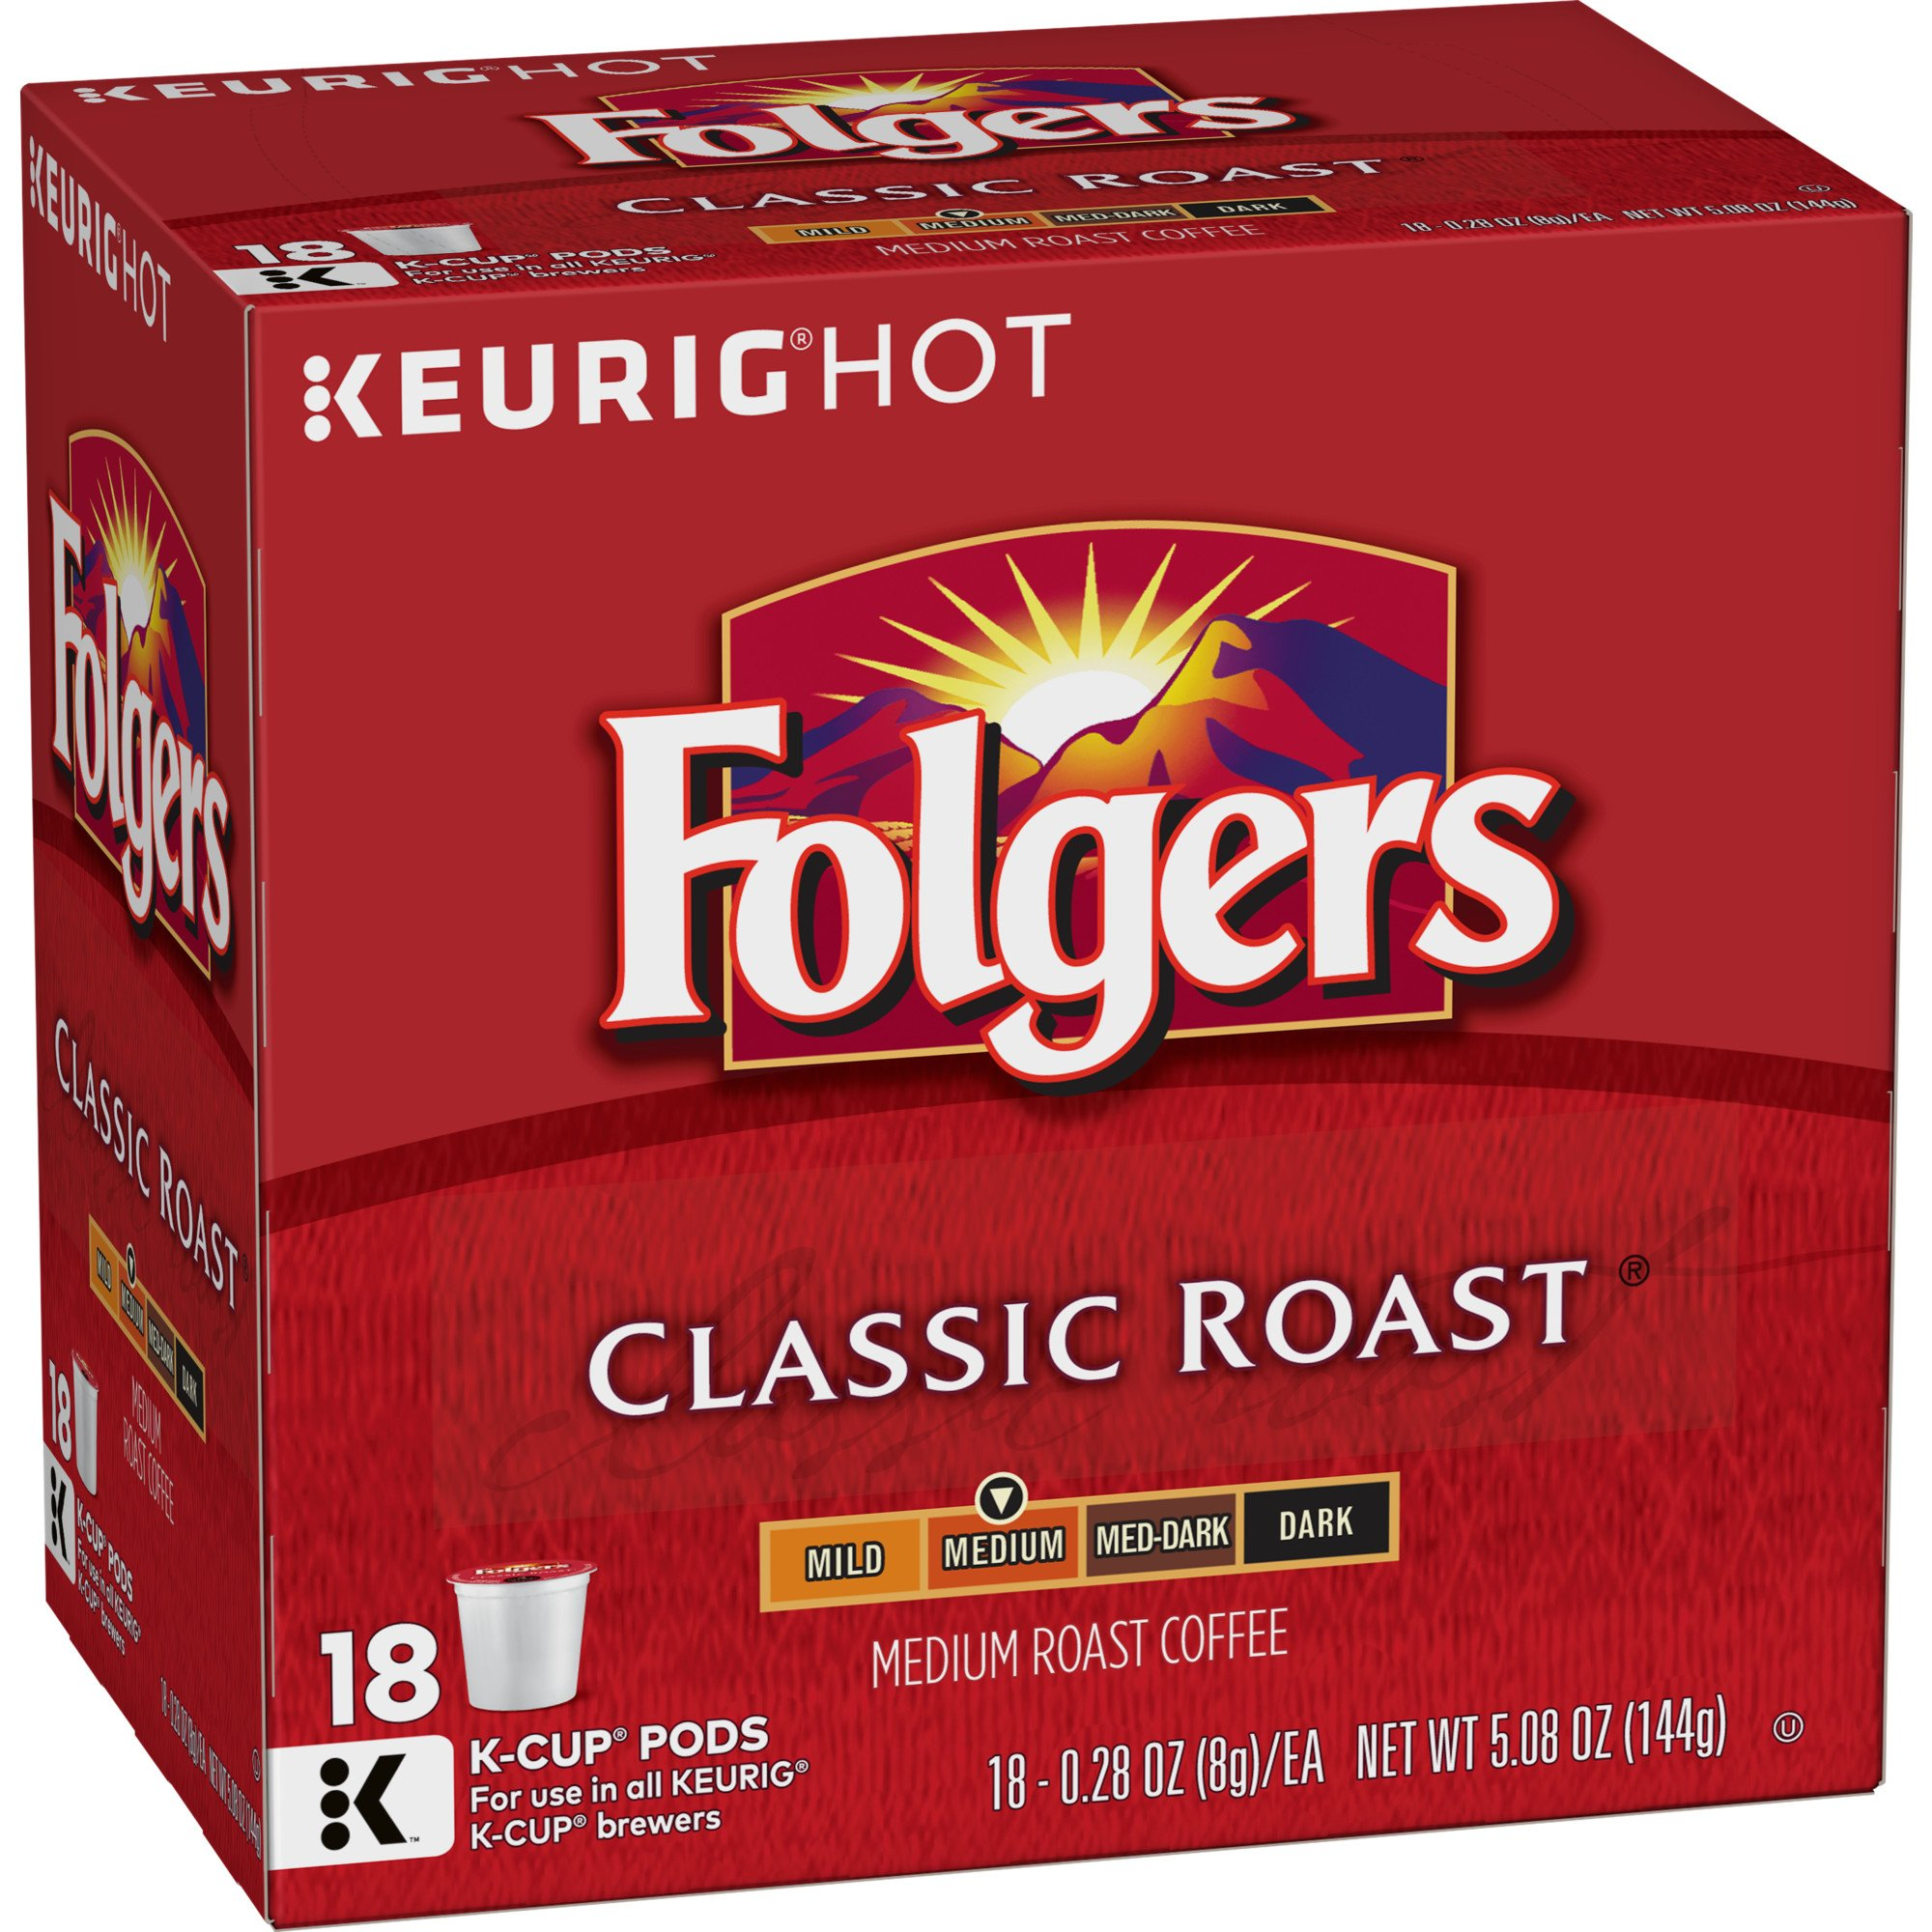 Folgers Classic Roast, Medium Roast Coffee, K Cup Pods for Keurig K Cup Brewers, 72 Count